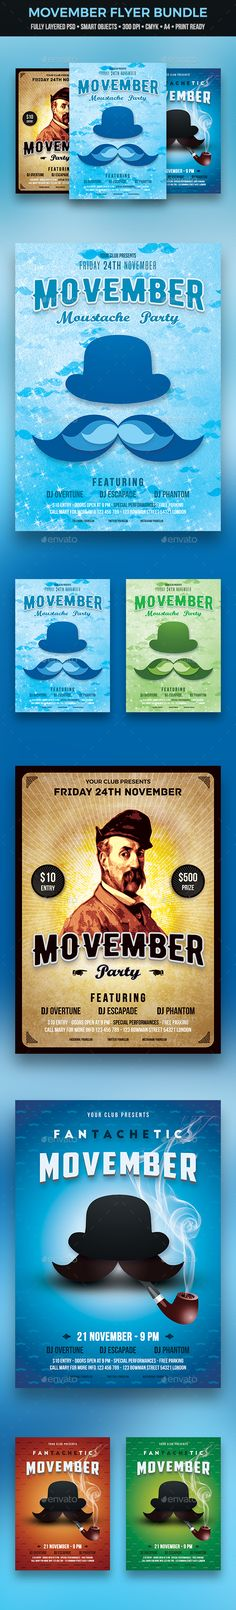 Movember Flyer Bundle